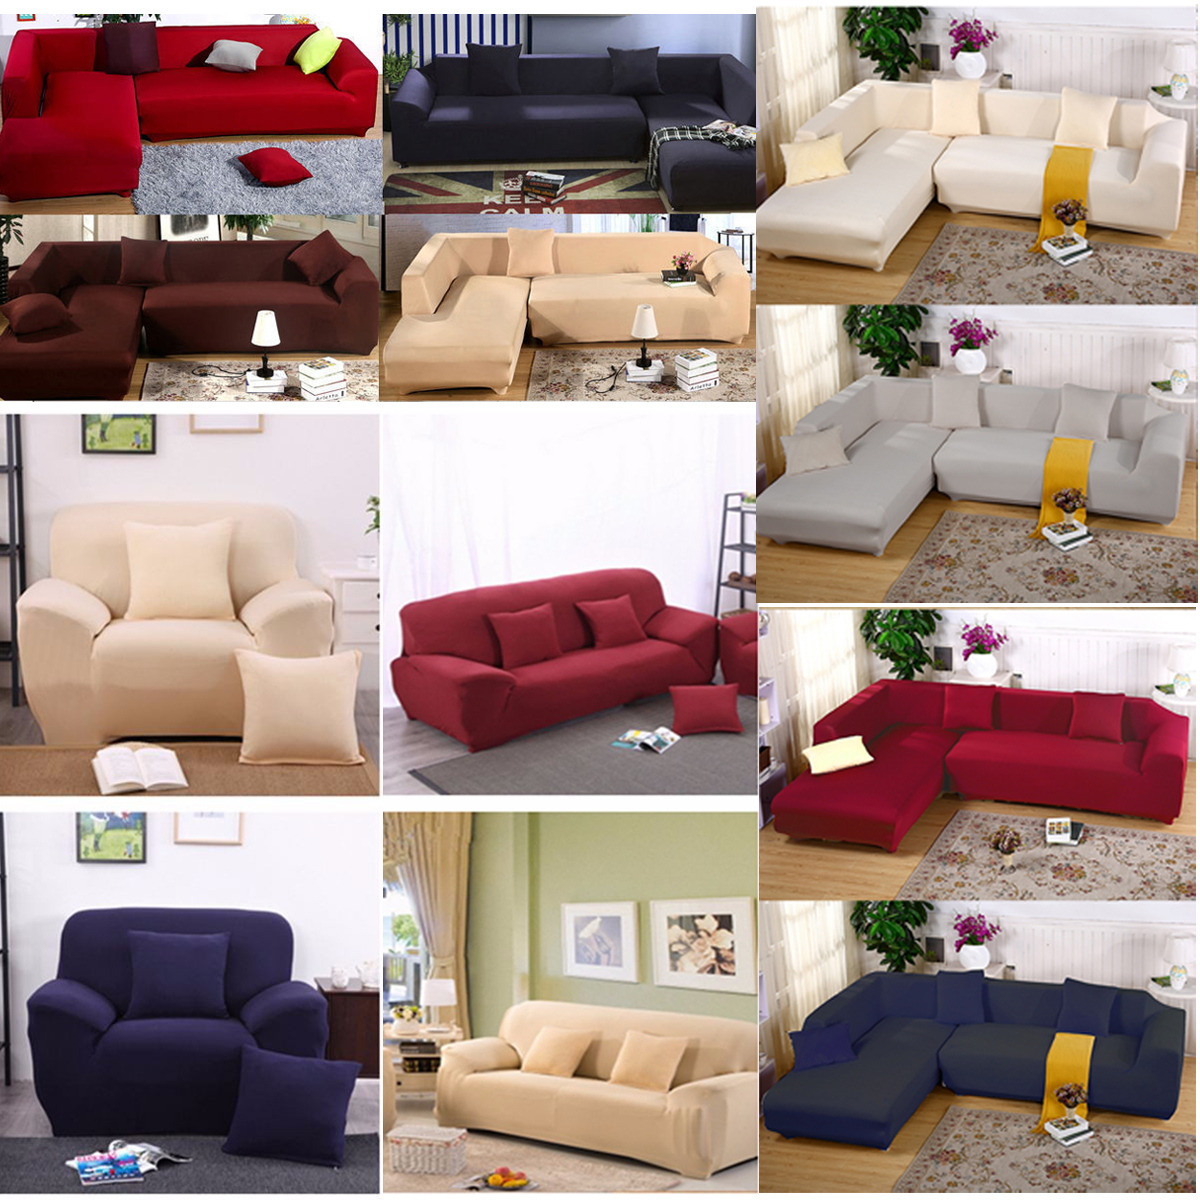 Stretch Sofa Slipcover - 1 2 3 Seater, 2 Seat +3 Seat/3 Seat +3 Seat L Shape Stretch Sofa Slipcover Couch Pure Color Anti Wrinkle Sofa Protector Furniture Slipcover For Moving Furn